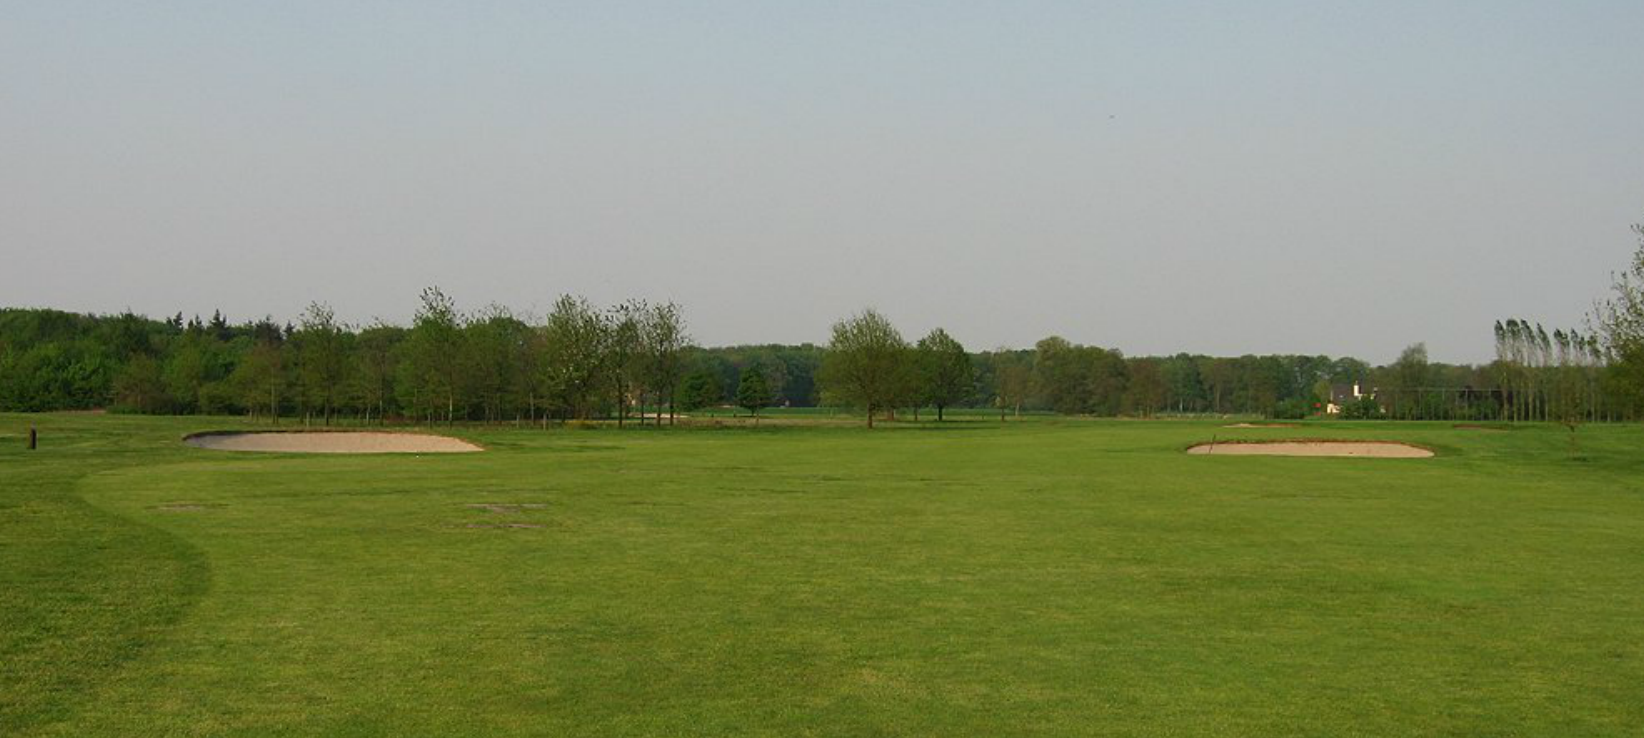 Hole 12 fairway and green before